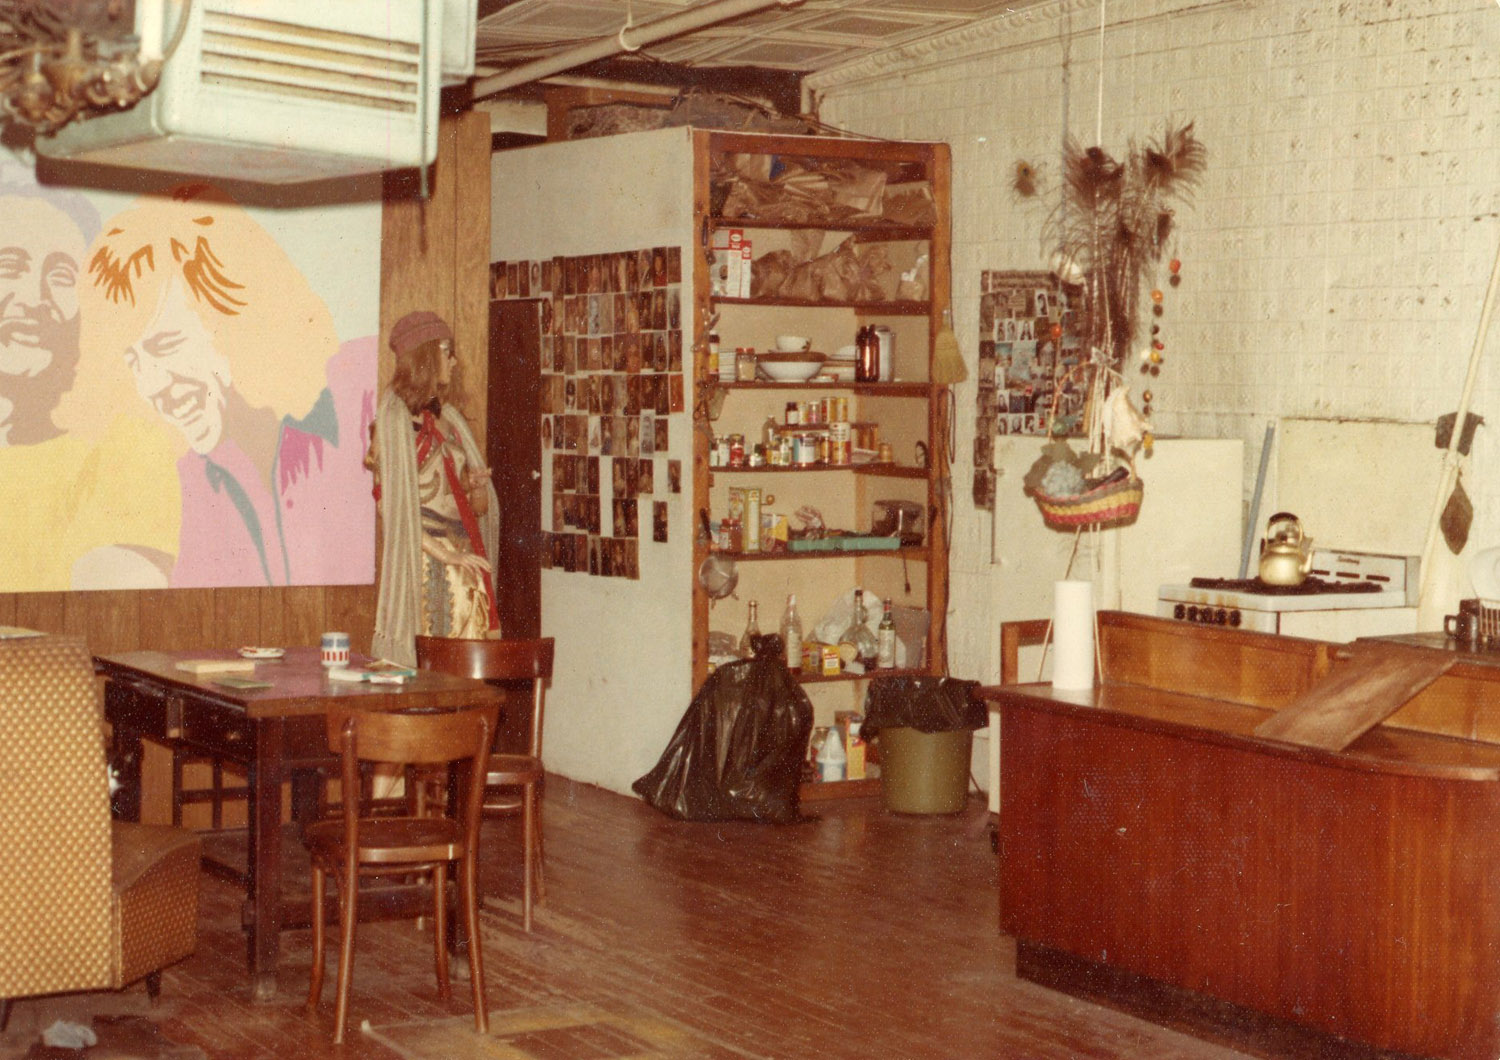 The dining area and kitchen, c. 1972.  Carla's painting of David Crosby and Graham Nash from Crosby Stills Nash and Young seen on wall.